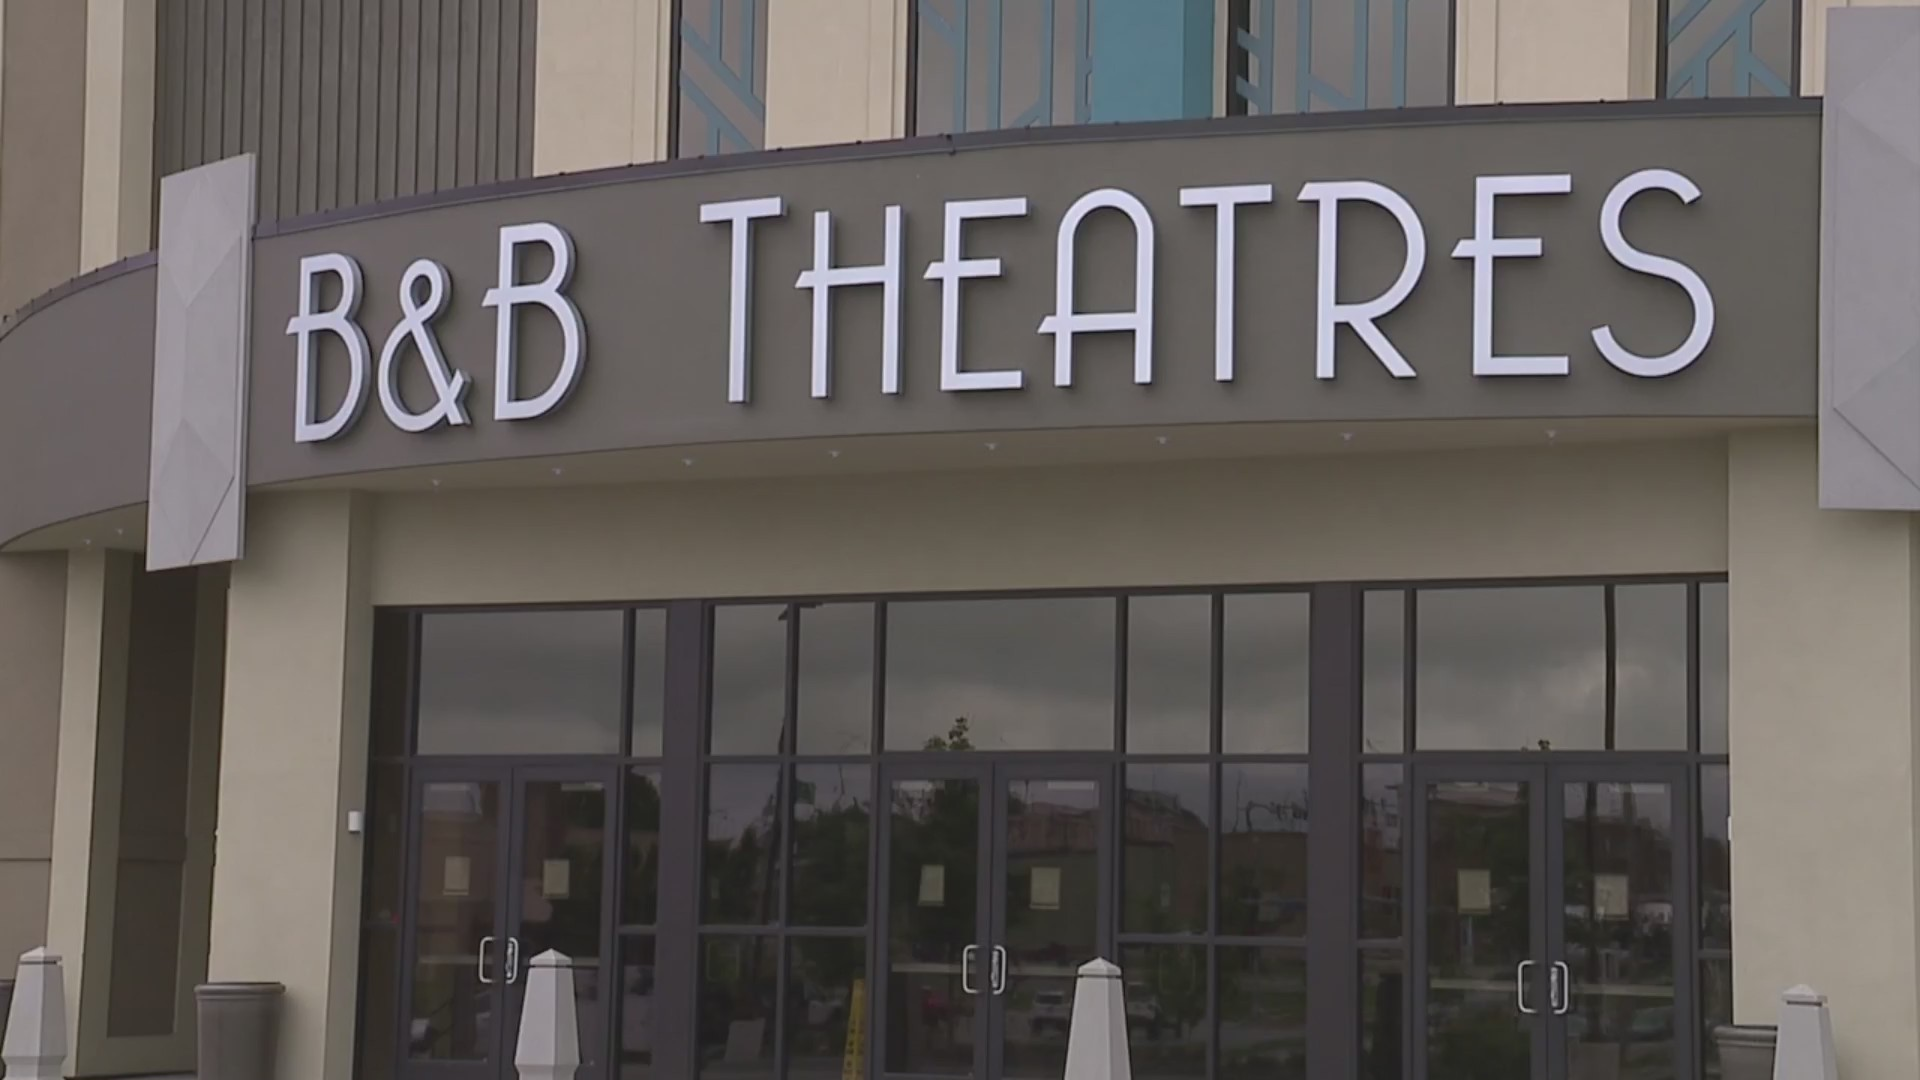 Picture of B&B Theatres sign